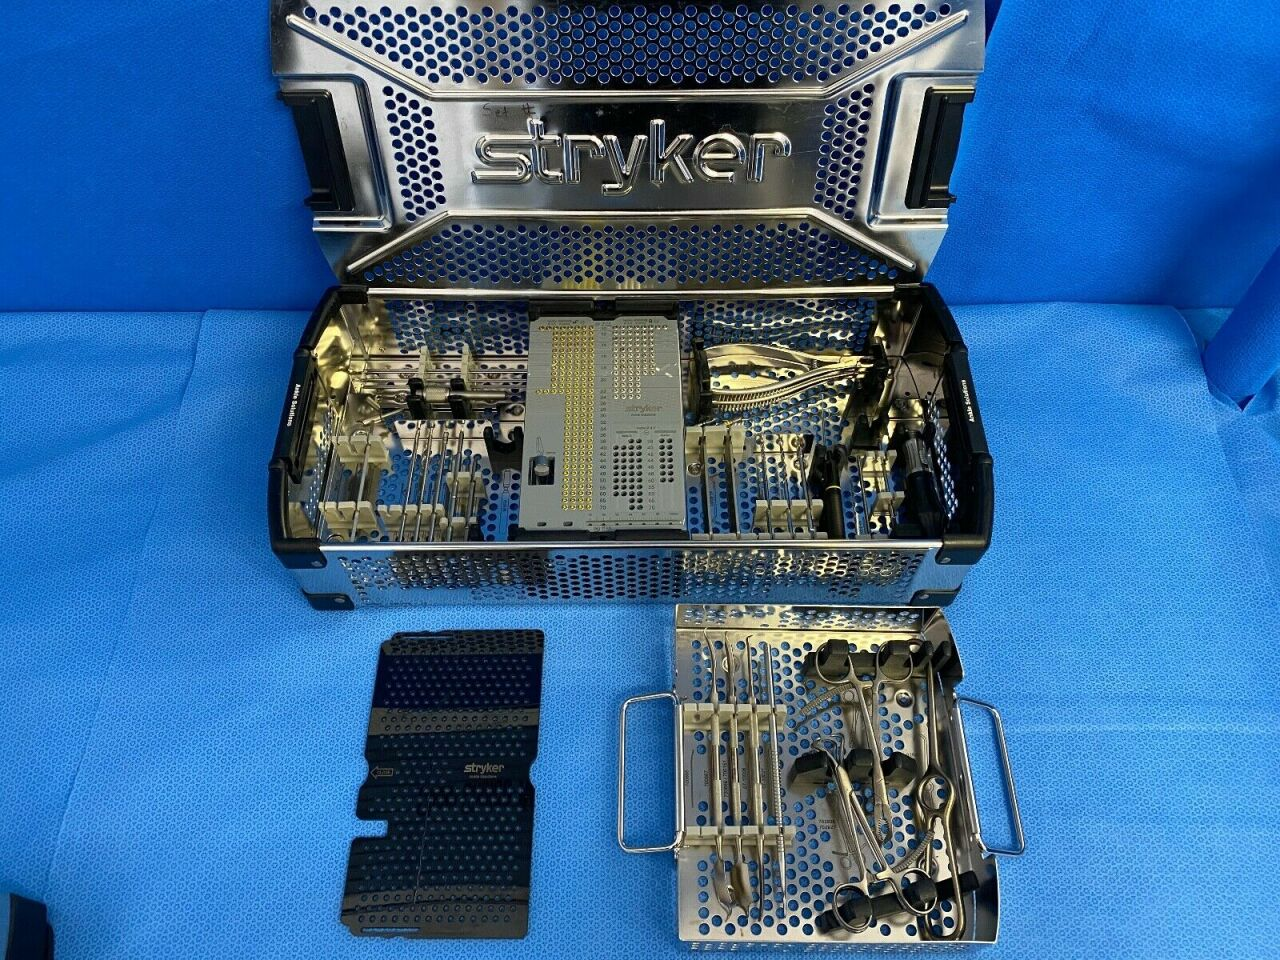 STRYKER VariAx Ankle Plating & Instrument Set System